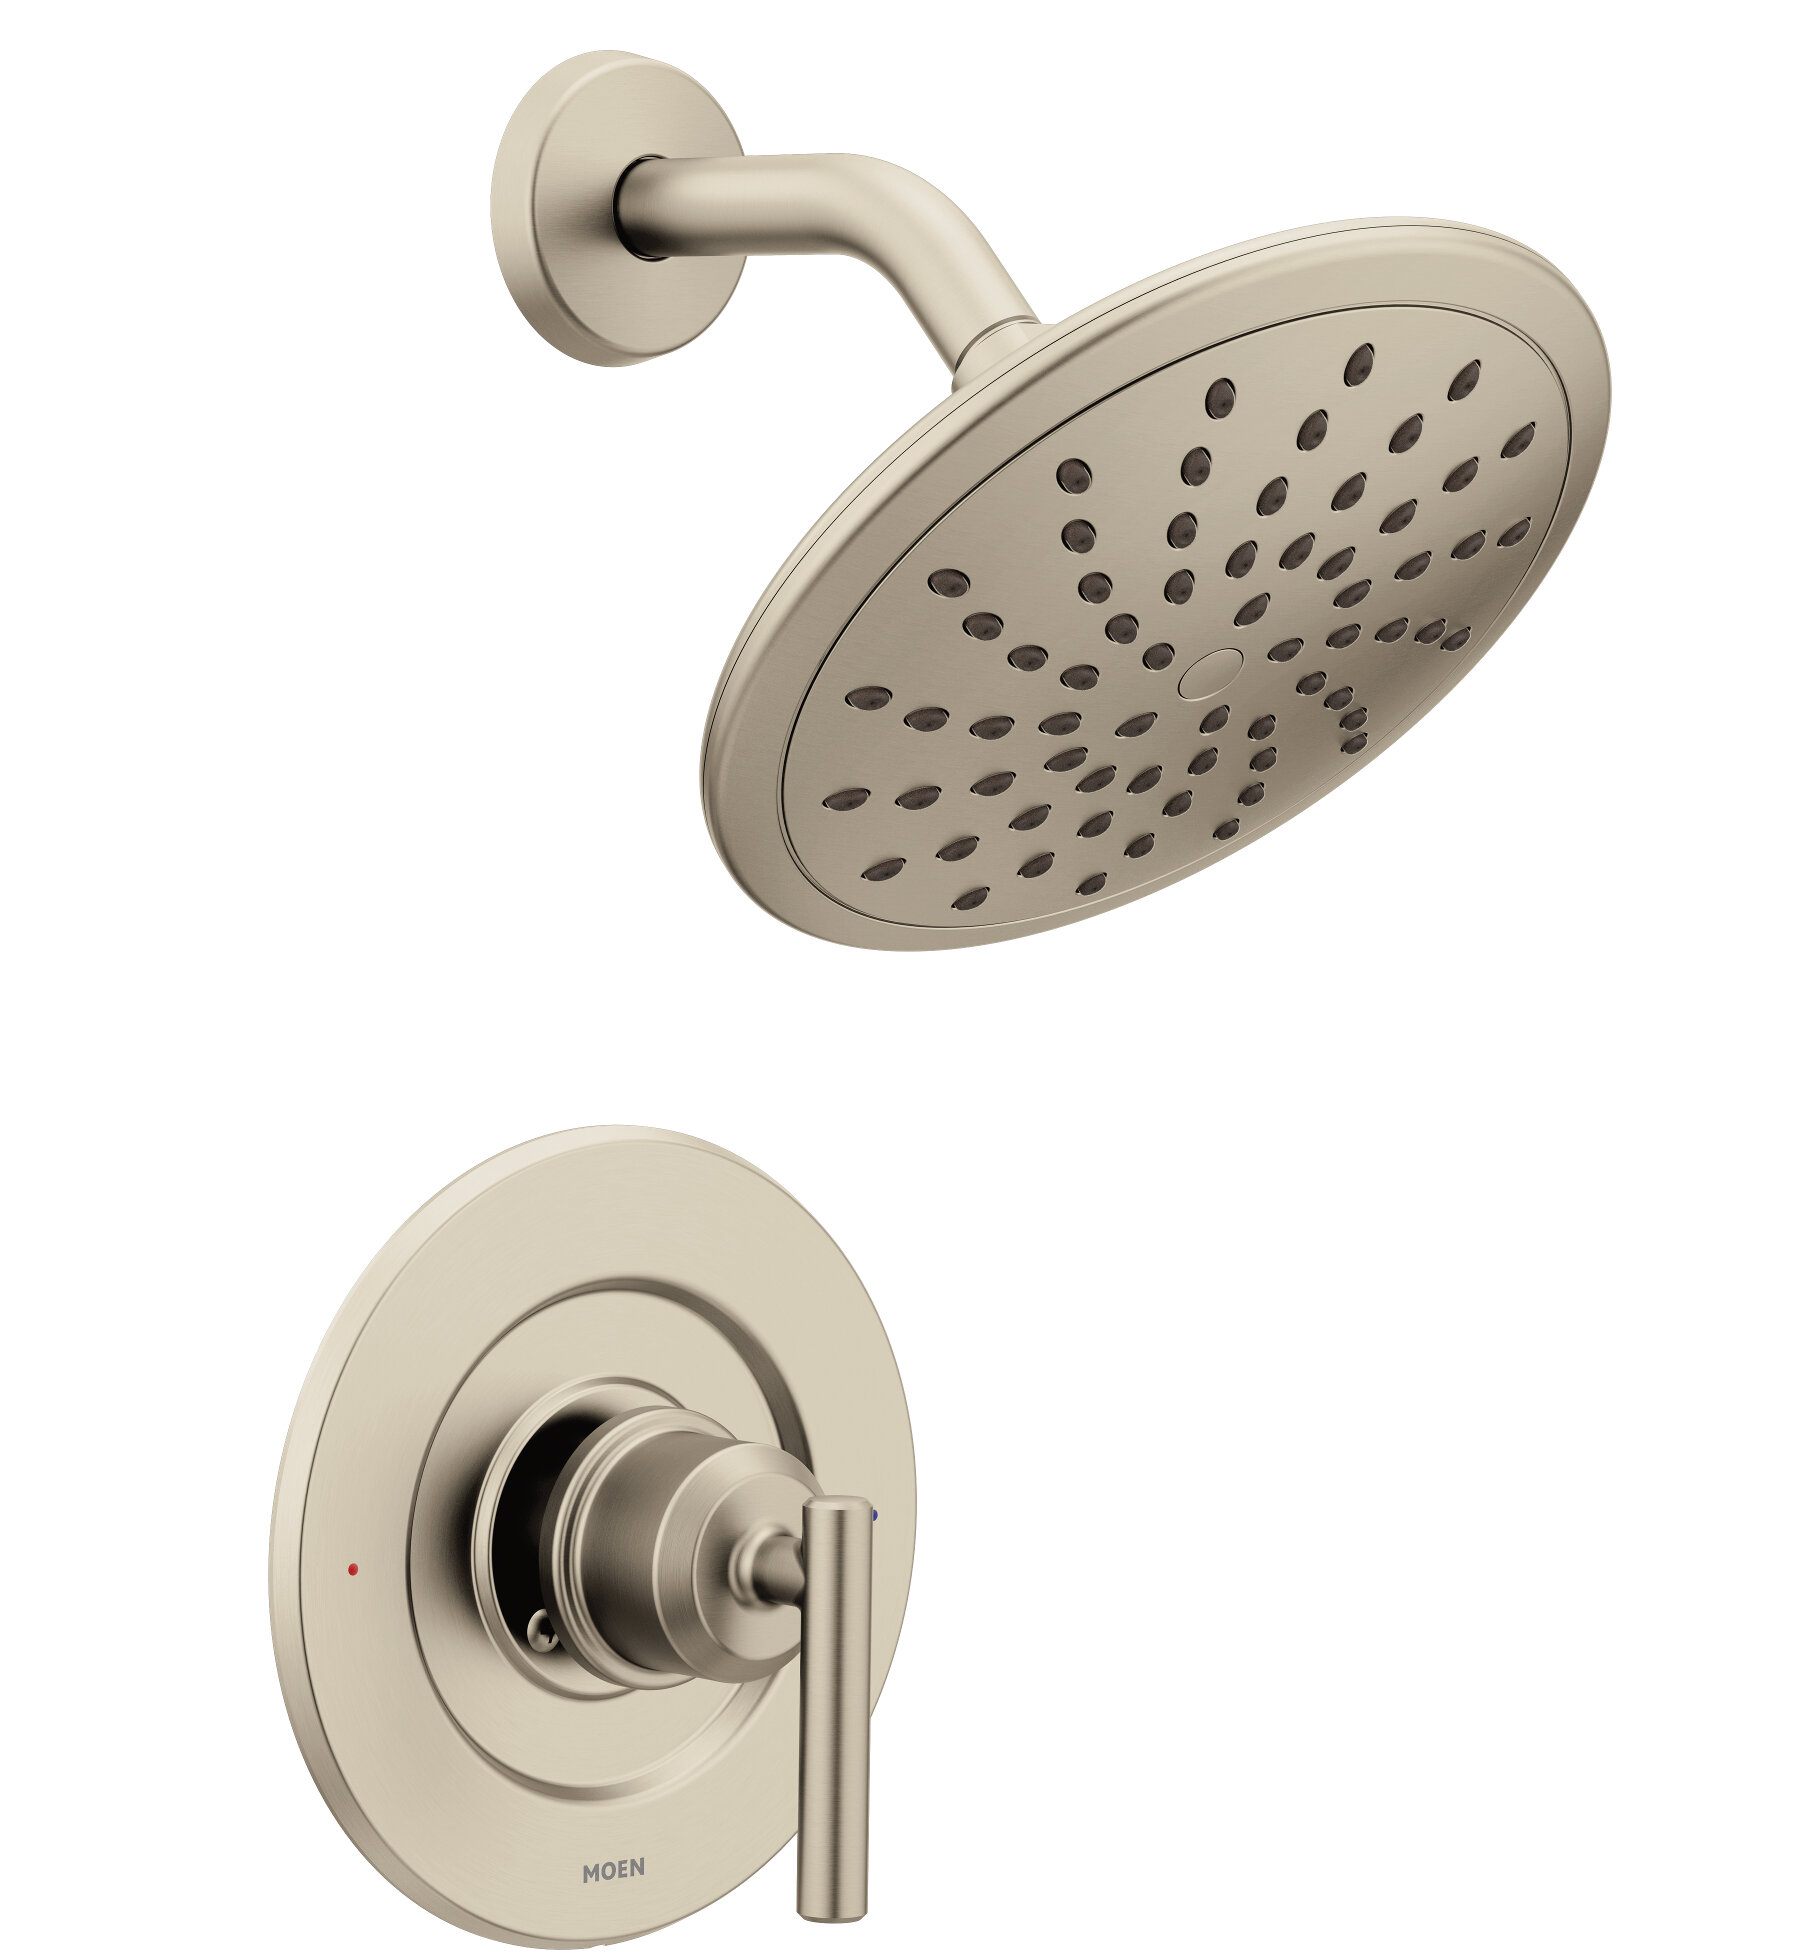 Moen Gibson Posi Temp One Handle Tub And Shower Faucet With Diverter Reviews Wayfair